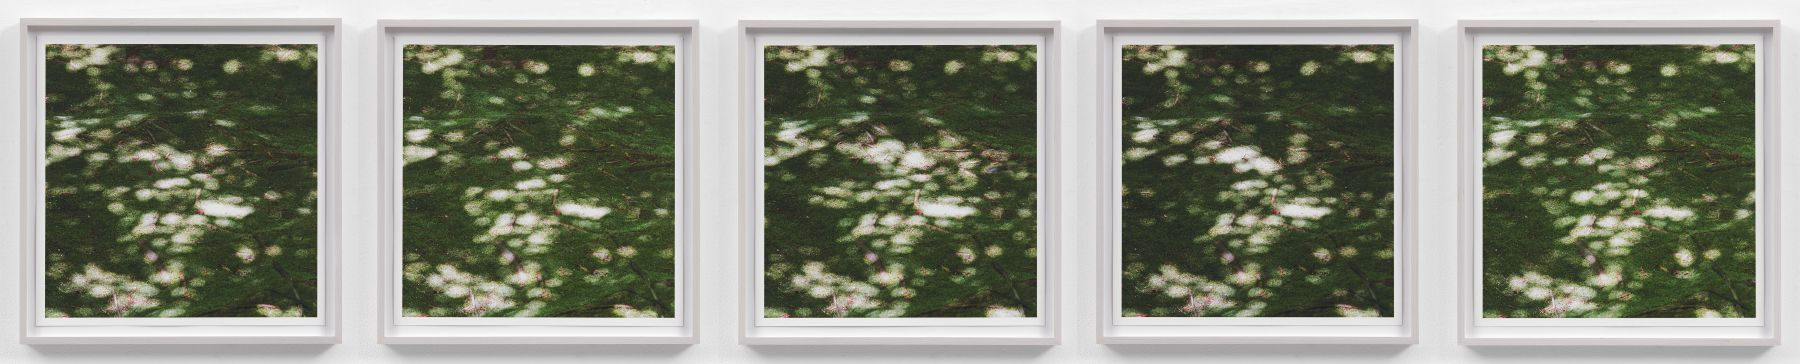 SPENCER FINCHInvisible Breeze (Ryoanji)2017Five archival inkjet photographs 17 x 17 (each)43.2 x 43.2 cm (each)Editon of 5 + 1APJCG9440